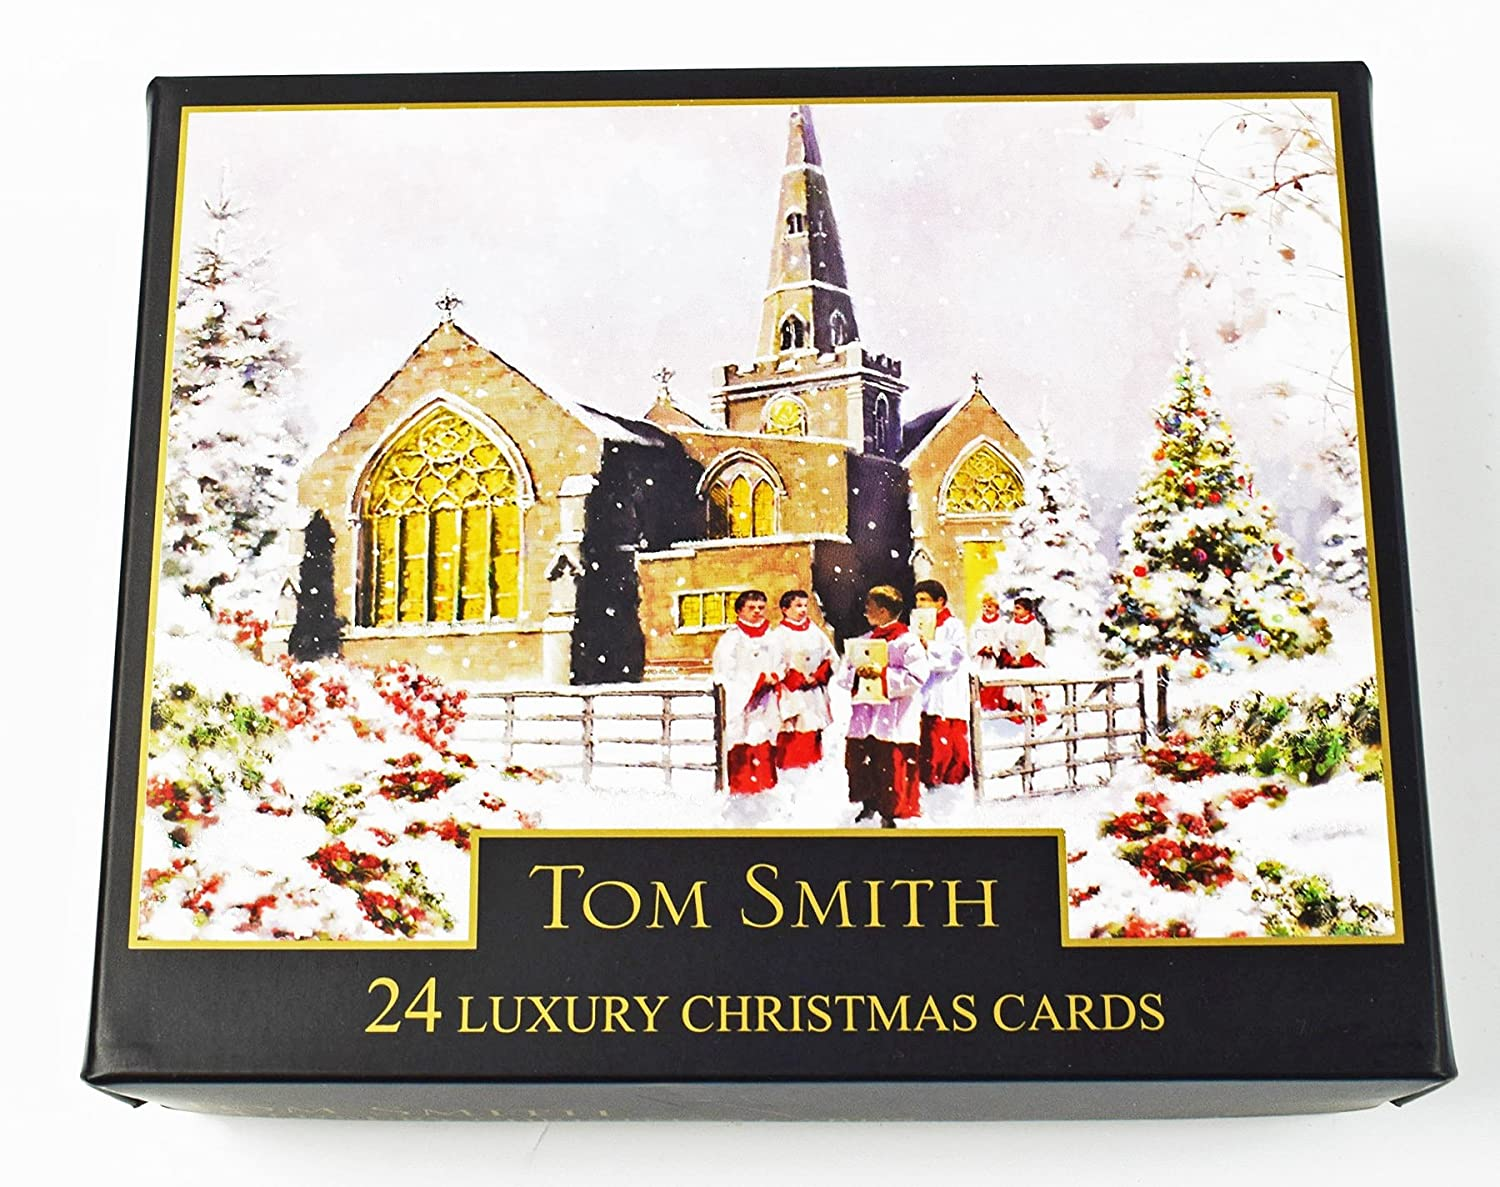 Christmas Cards Church Scene Bumper Boxed 24 Pack Luxury Xmas Tom